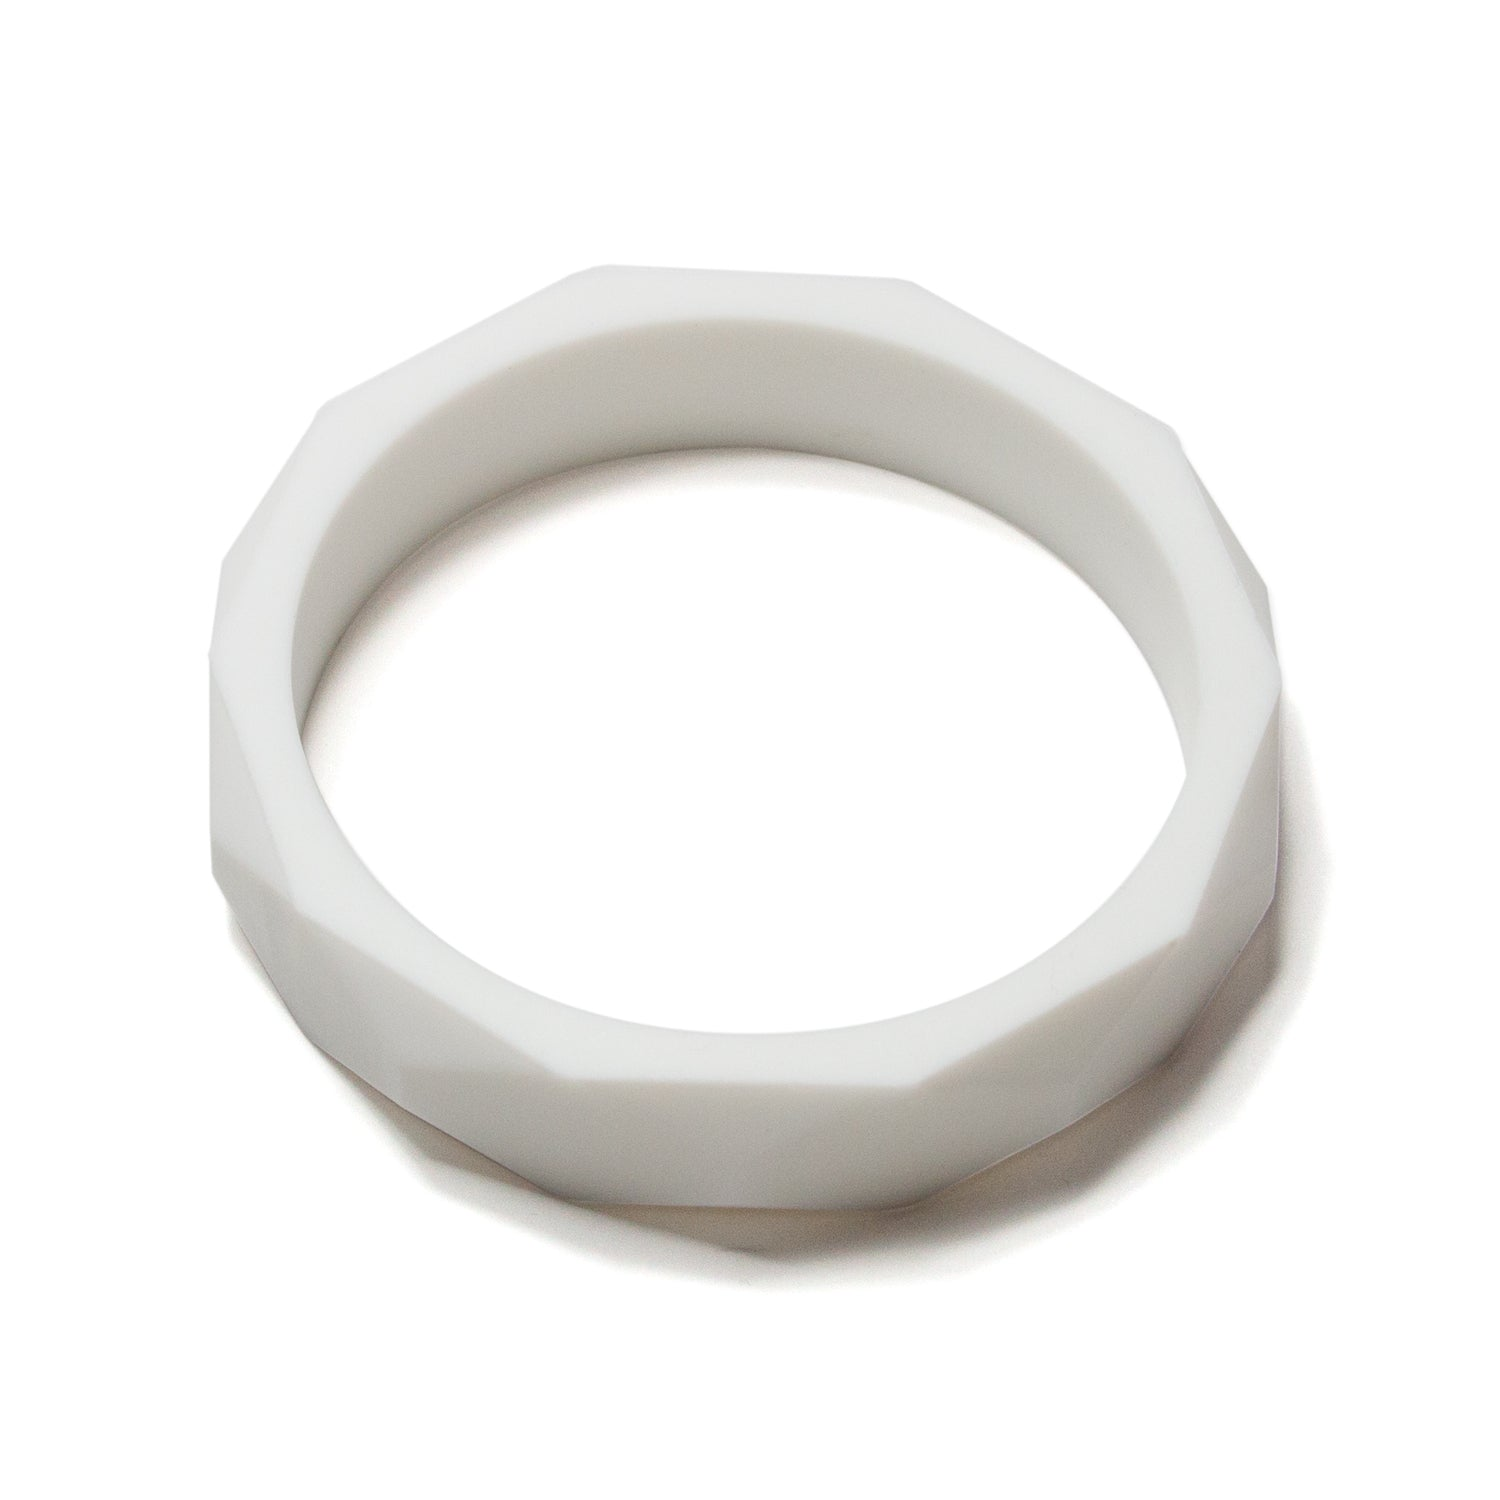 Finley Milk Silicone Teething Jewelry